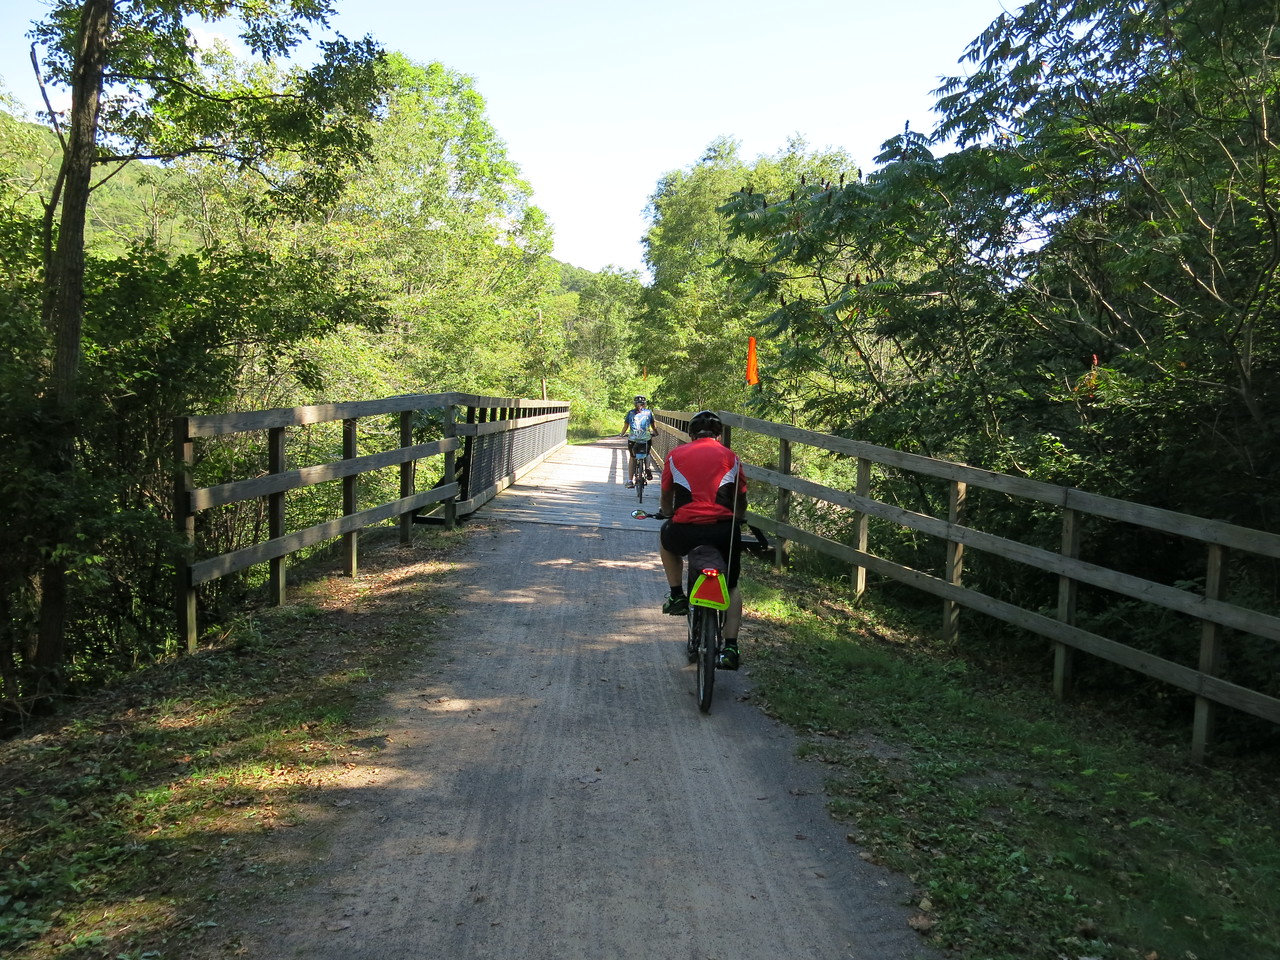 Leaving Meyersdale, the GAP trail follows Flaugherty Creek to the Eastern Continental Divide